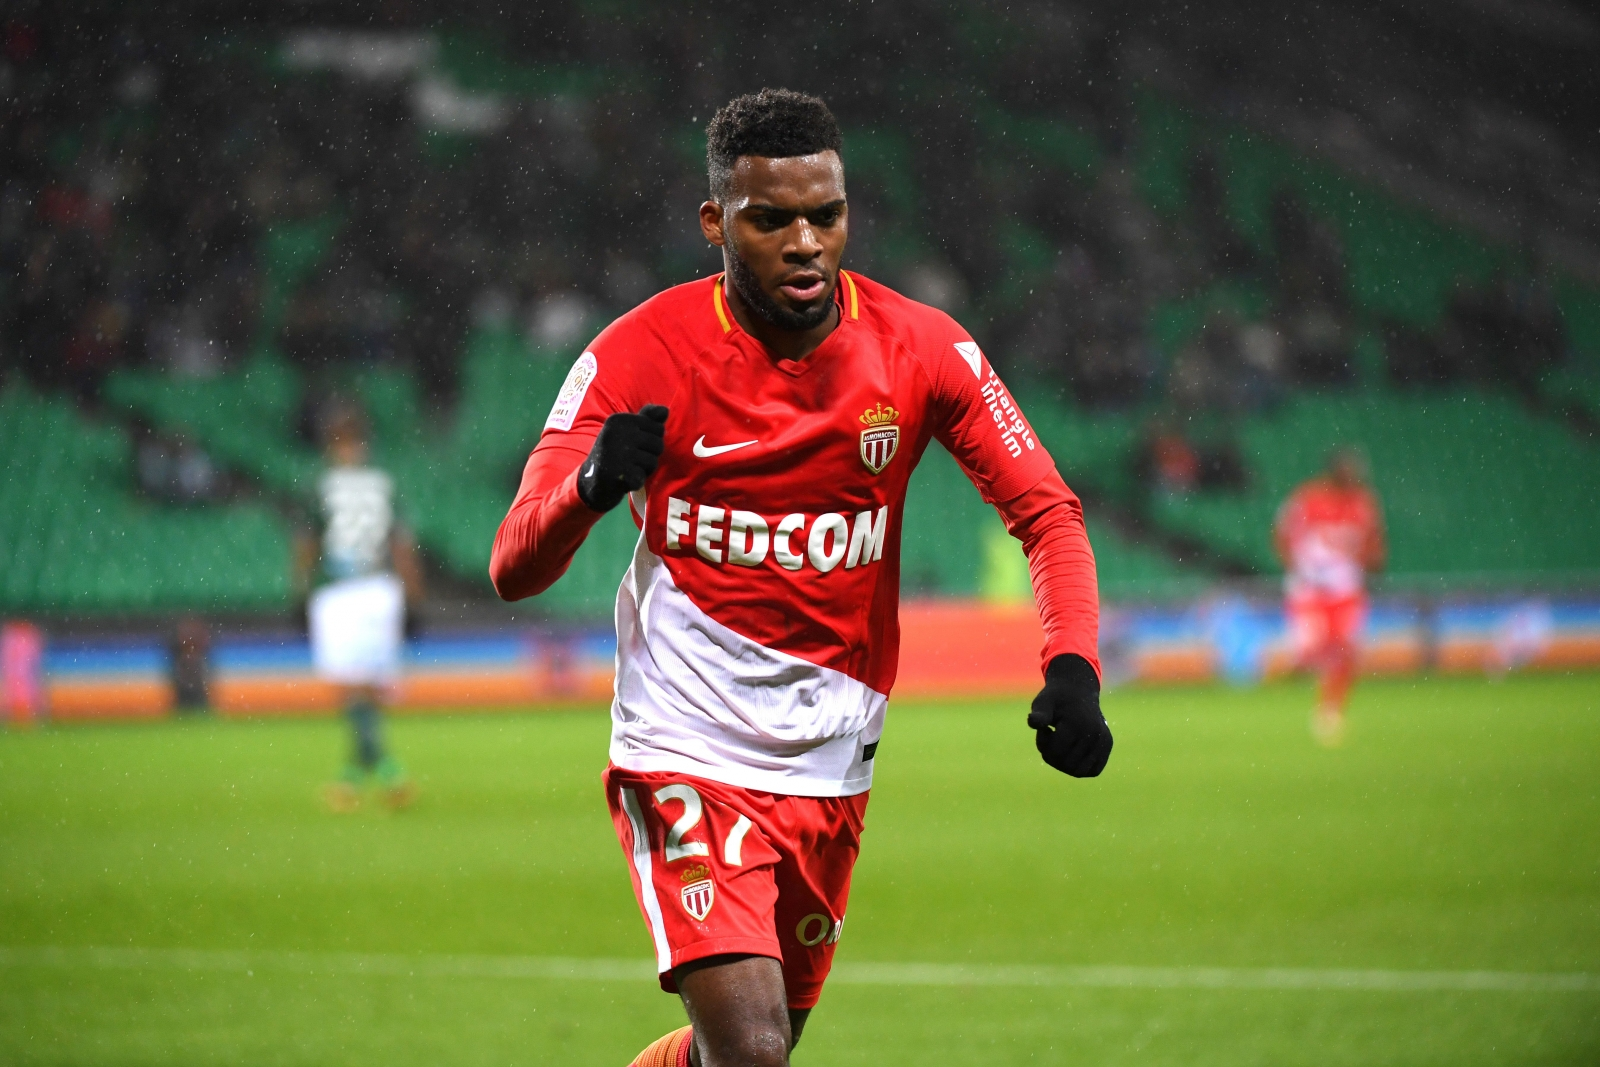 Arsenal have squarely turned their attention to Thomas Lemar